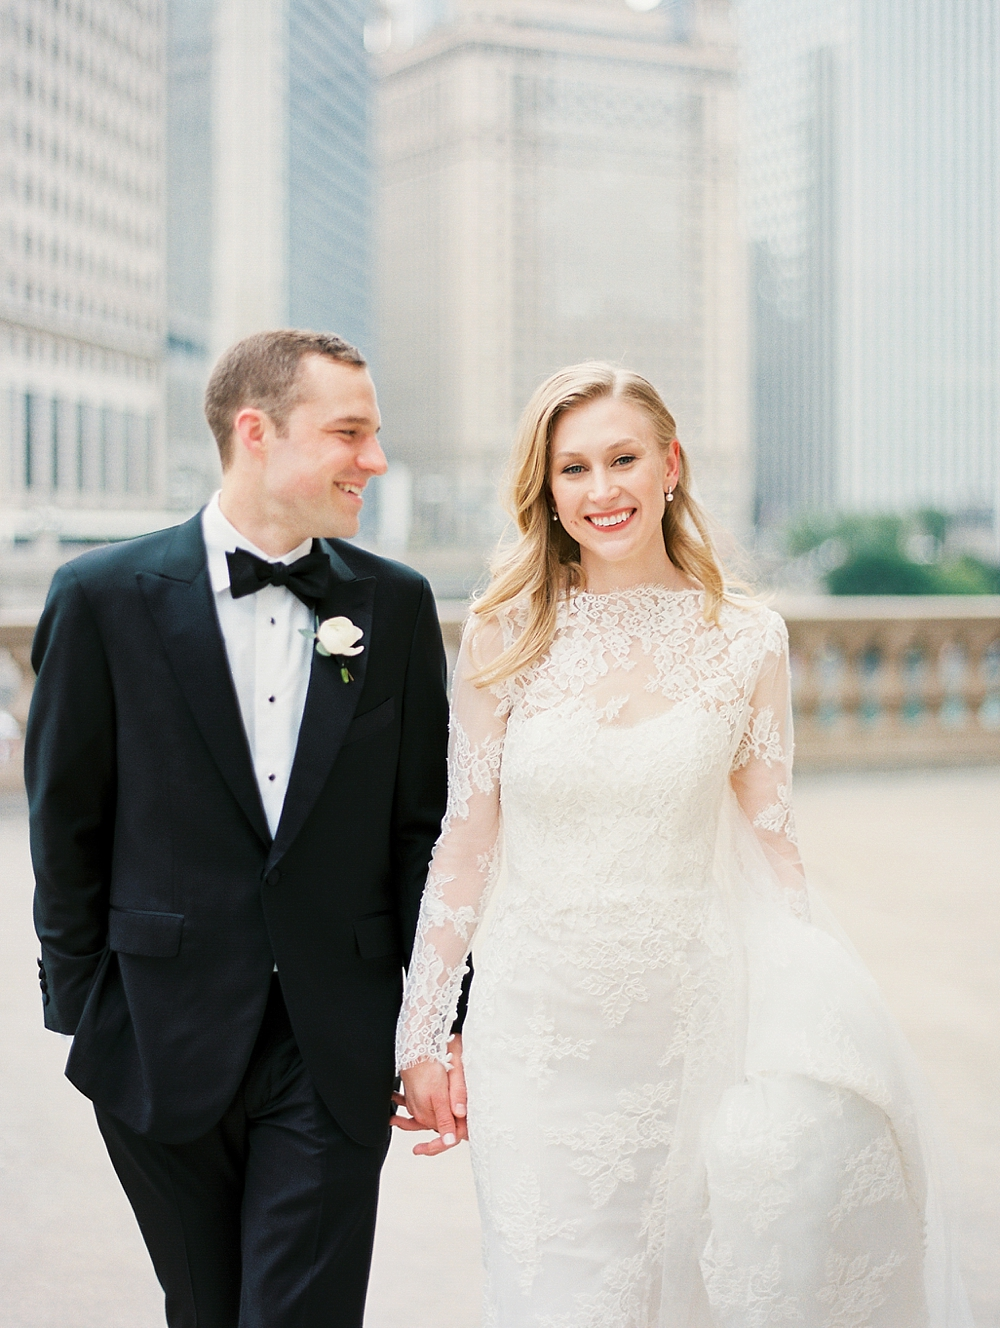 kristin-la-voie-photography-chicago-wedding-photographer-215